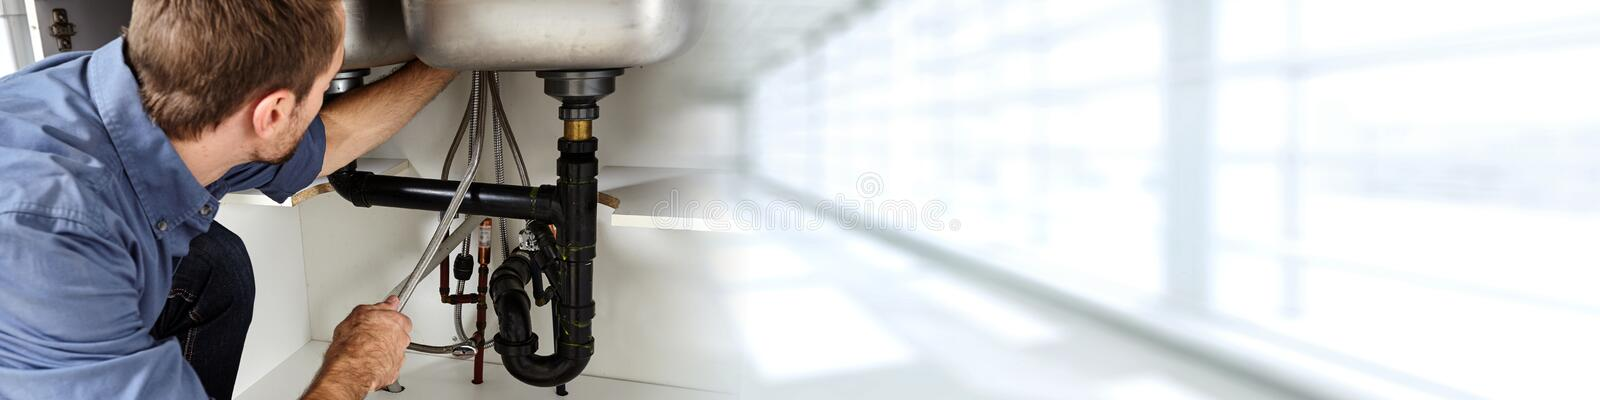 Plumber. Professional plumber doing renovation in kitchen home royalty free stock photography